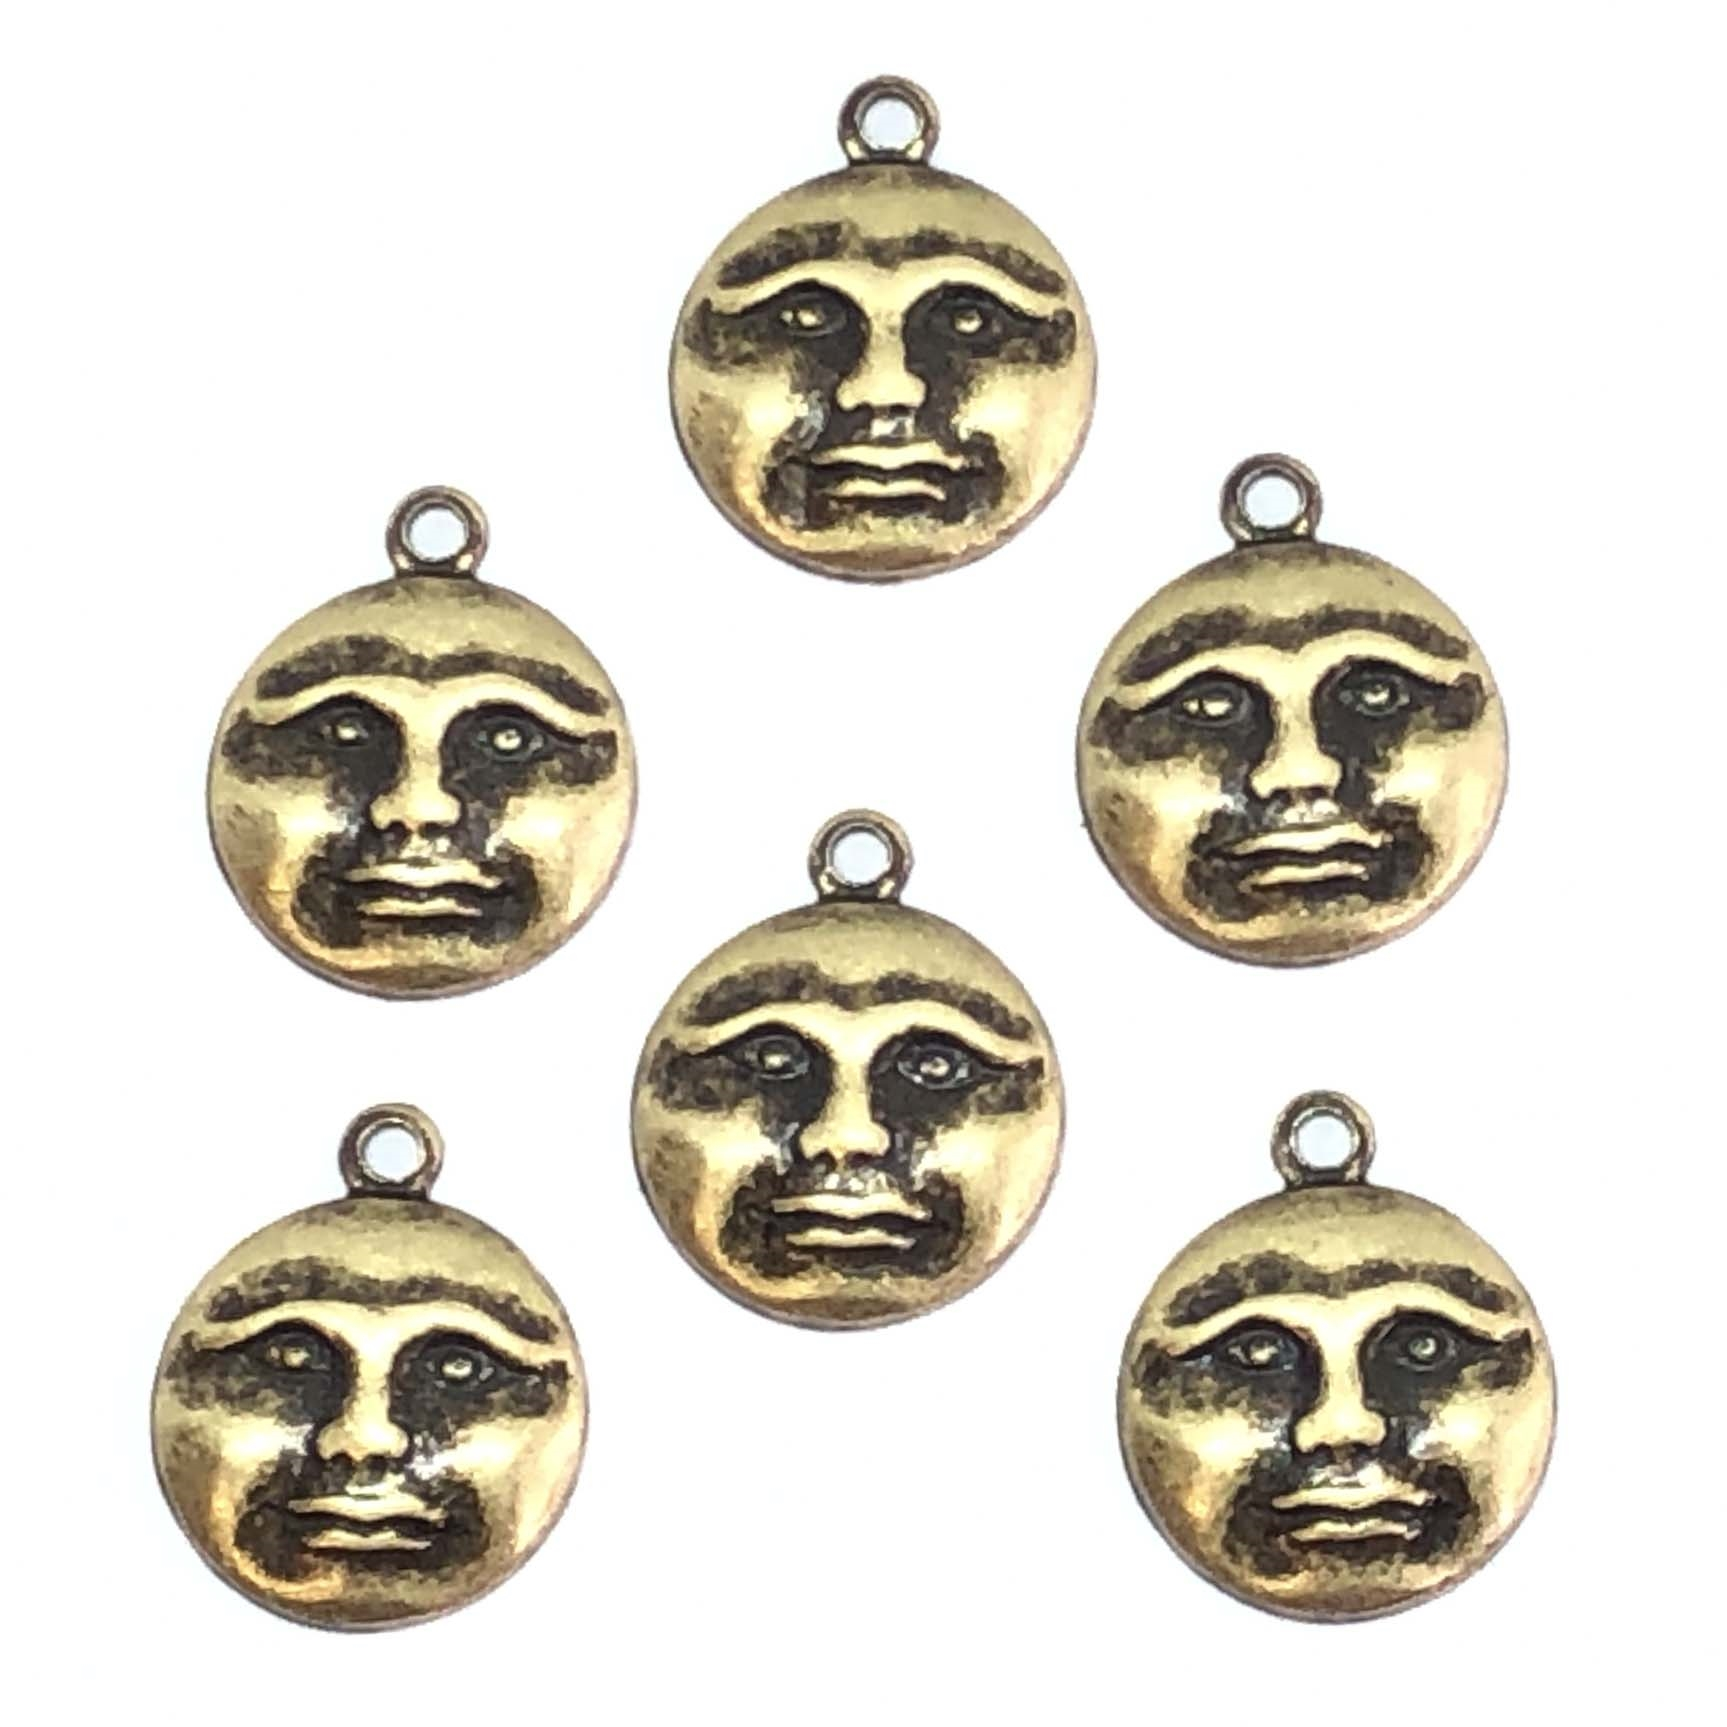 moon charm, 06600, brass ox, antique brass, antique black, moon face, jewelry making supplies, jewelry making supplies, US made, nickel free jewelry supplies, face charms